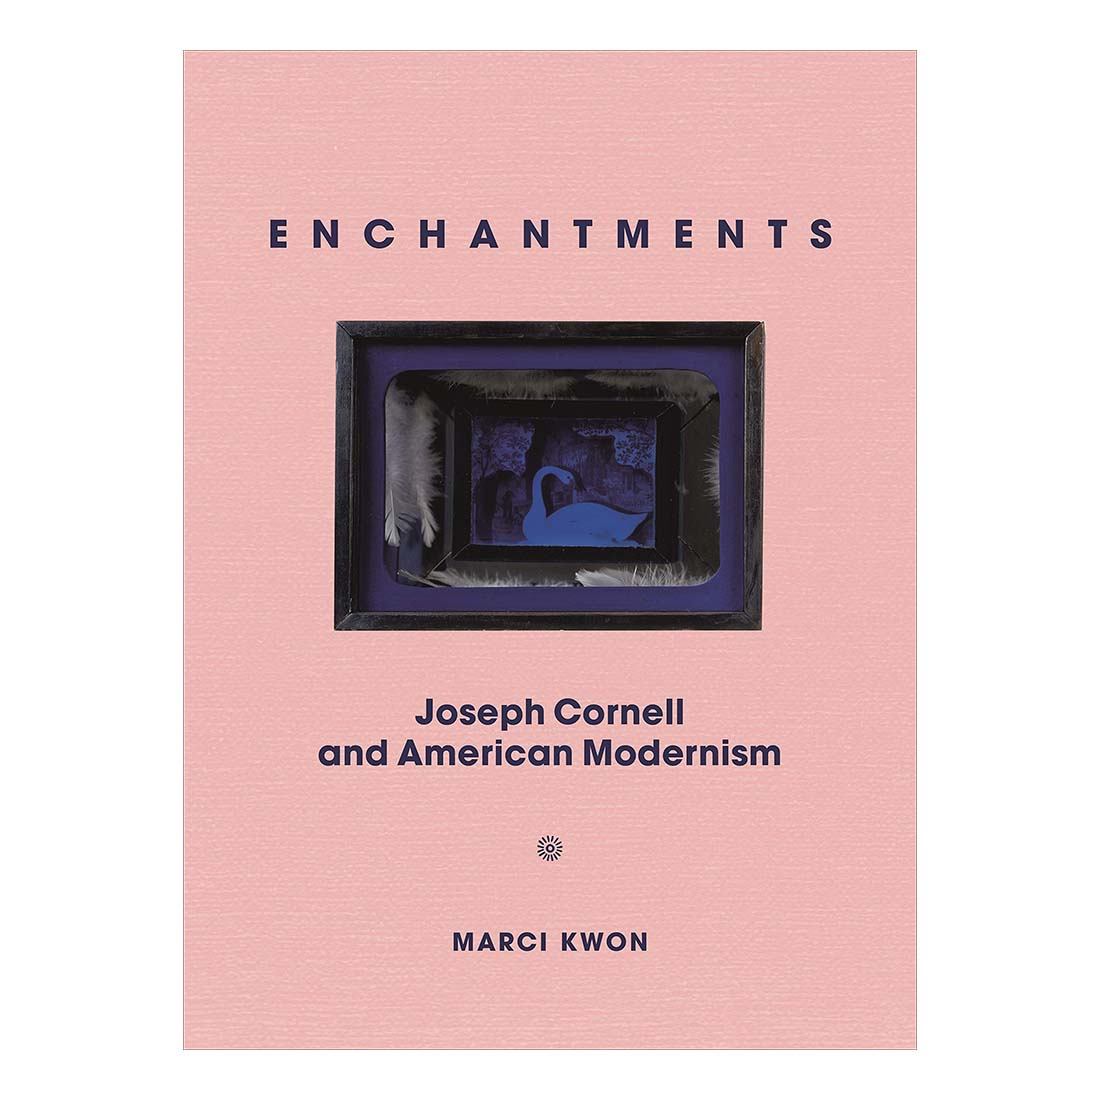 Enchantments: Joseph Cornell and American Modernism